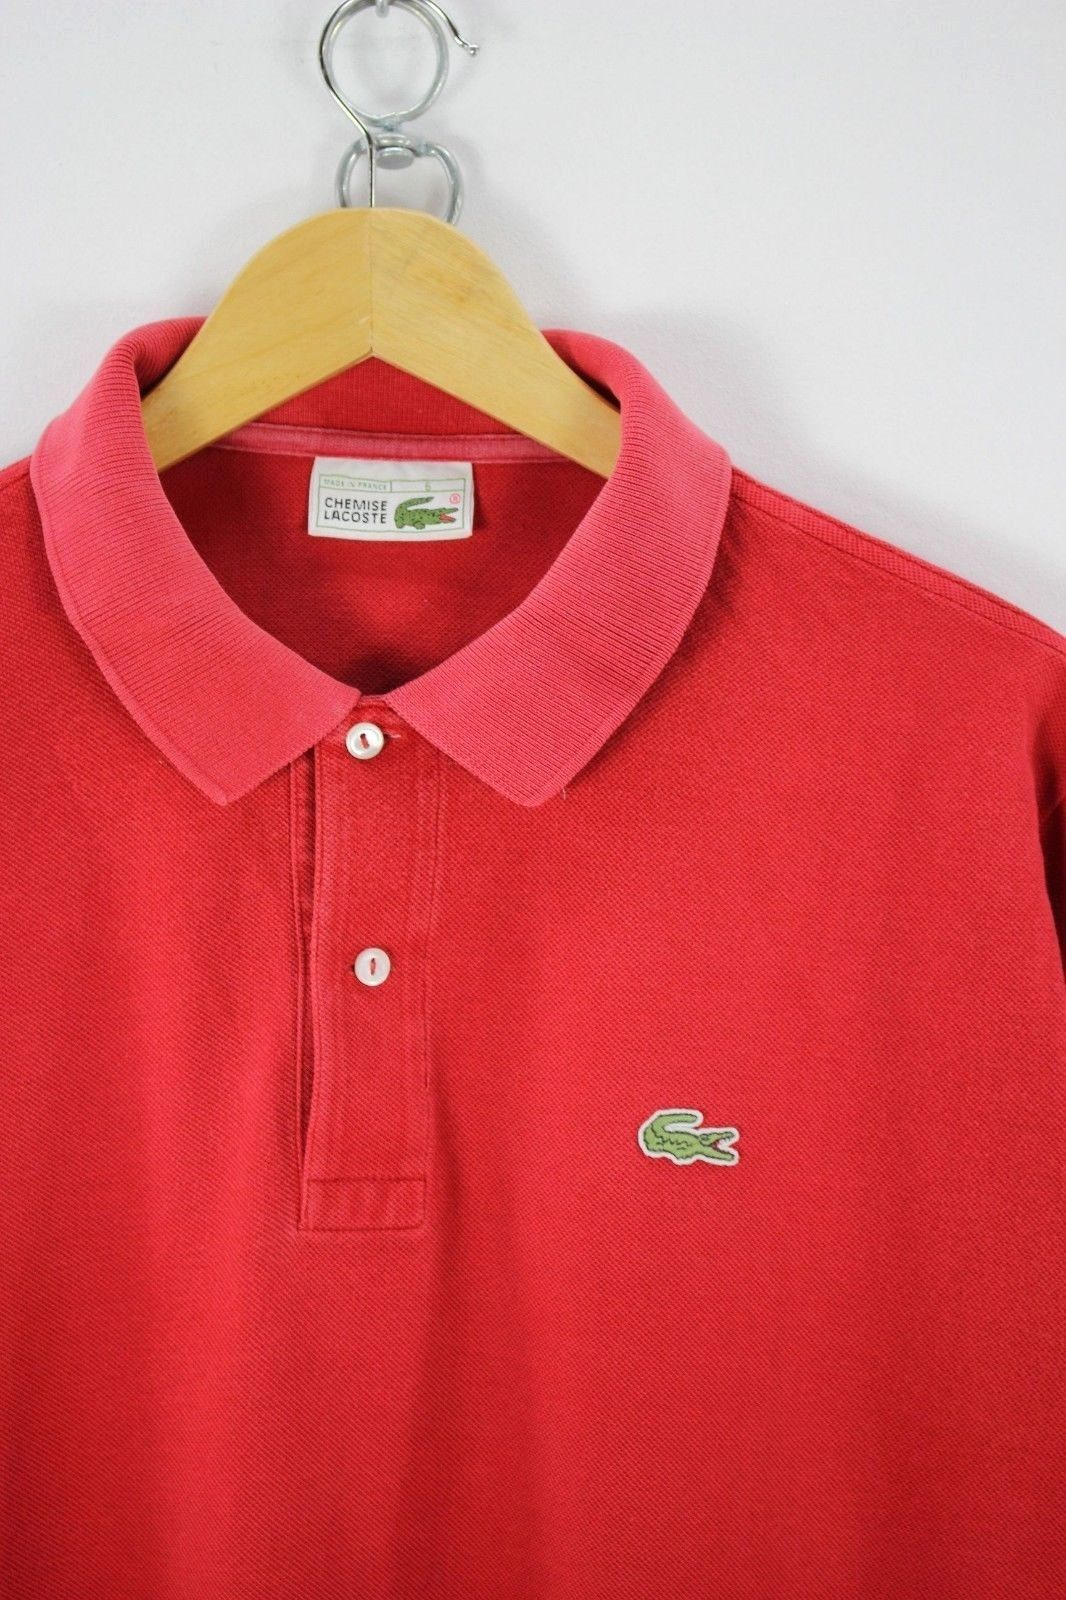 Mens Vintage Polo Shirts Branded Coats And Jackets In Uk Ireland